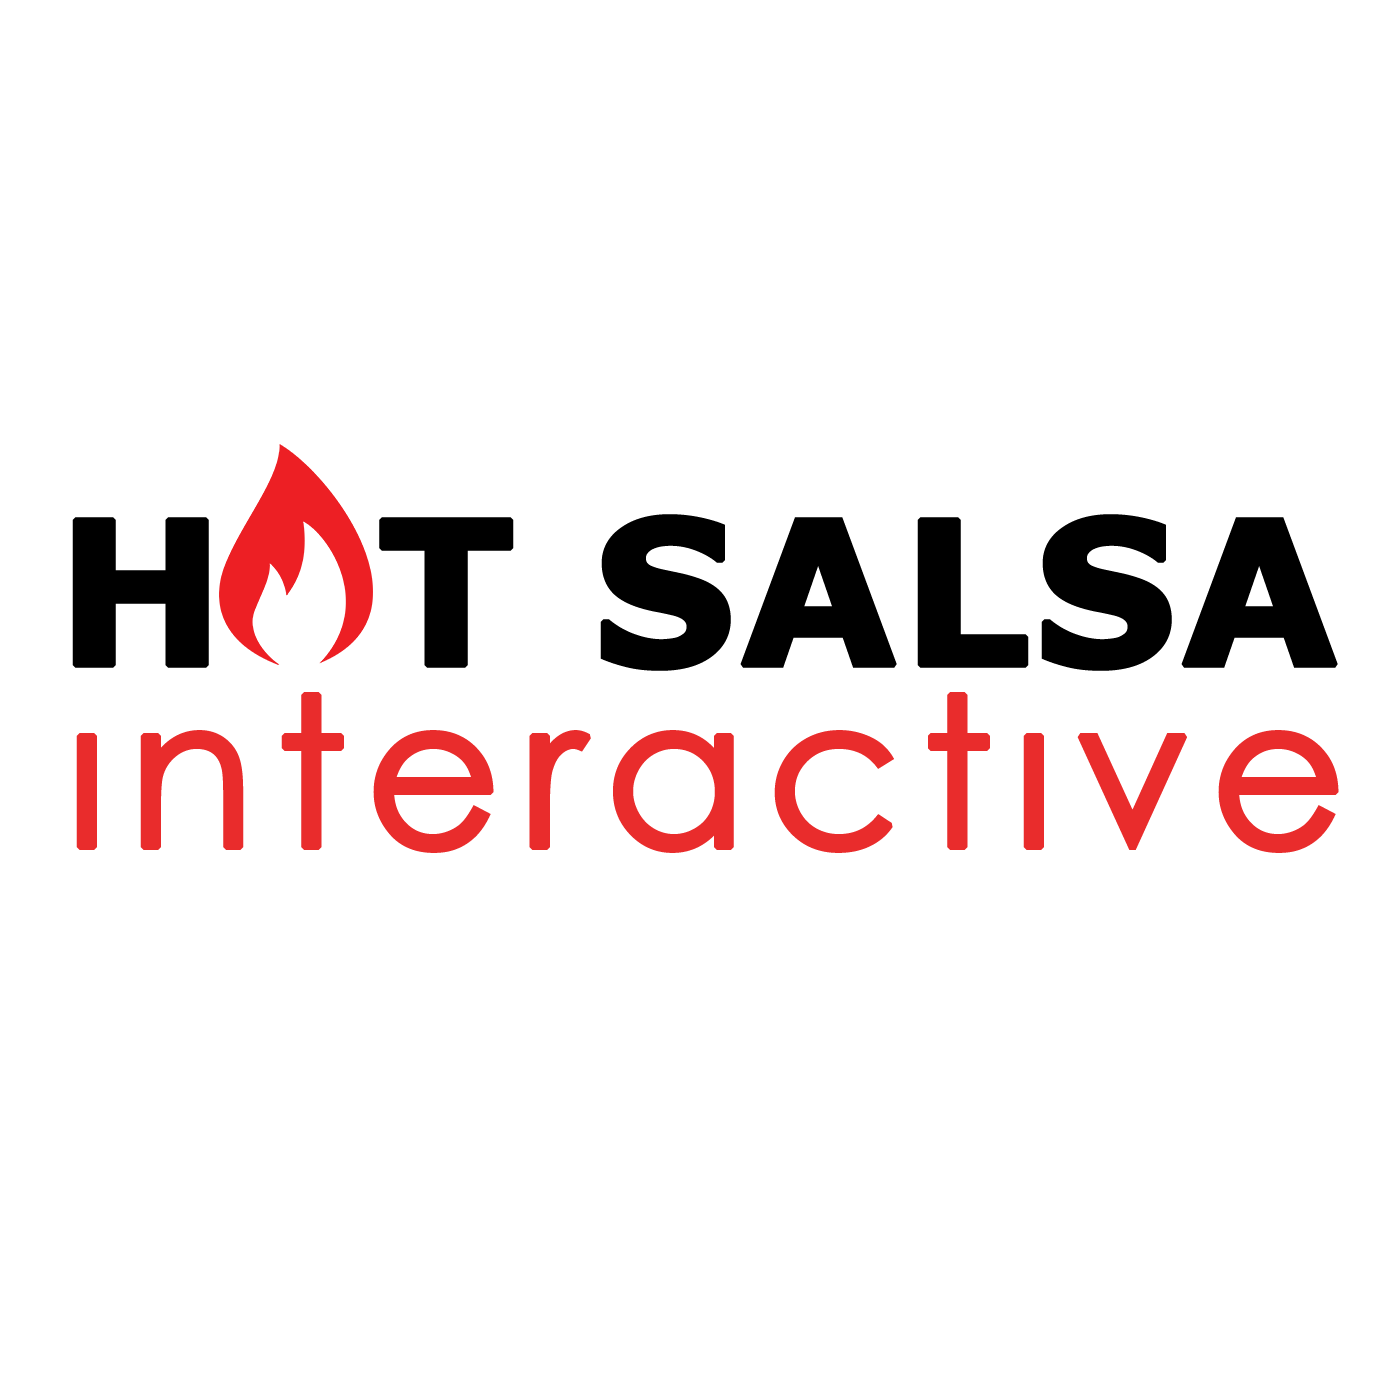 Hot Salsa Interactive